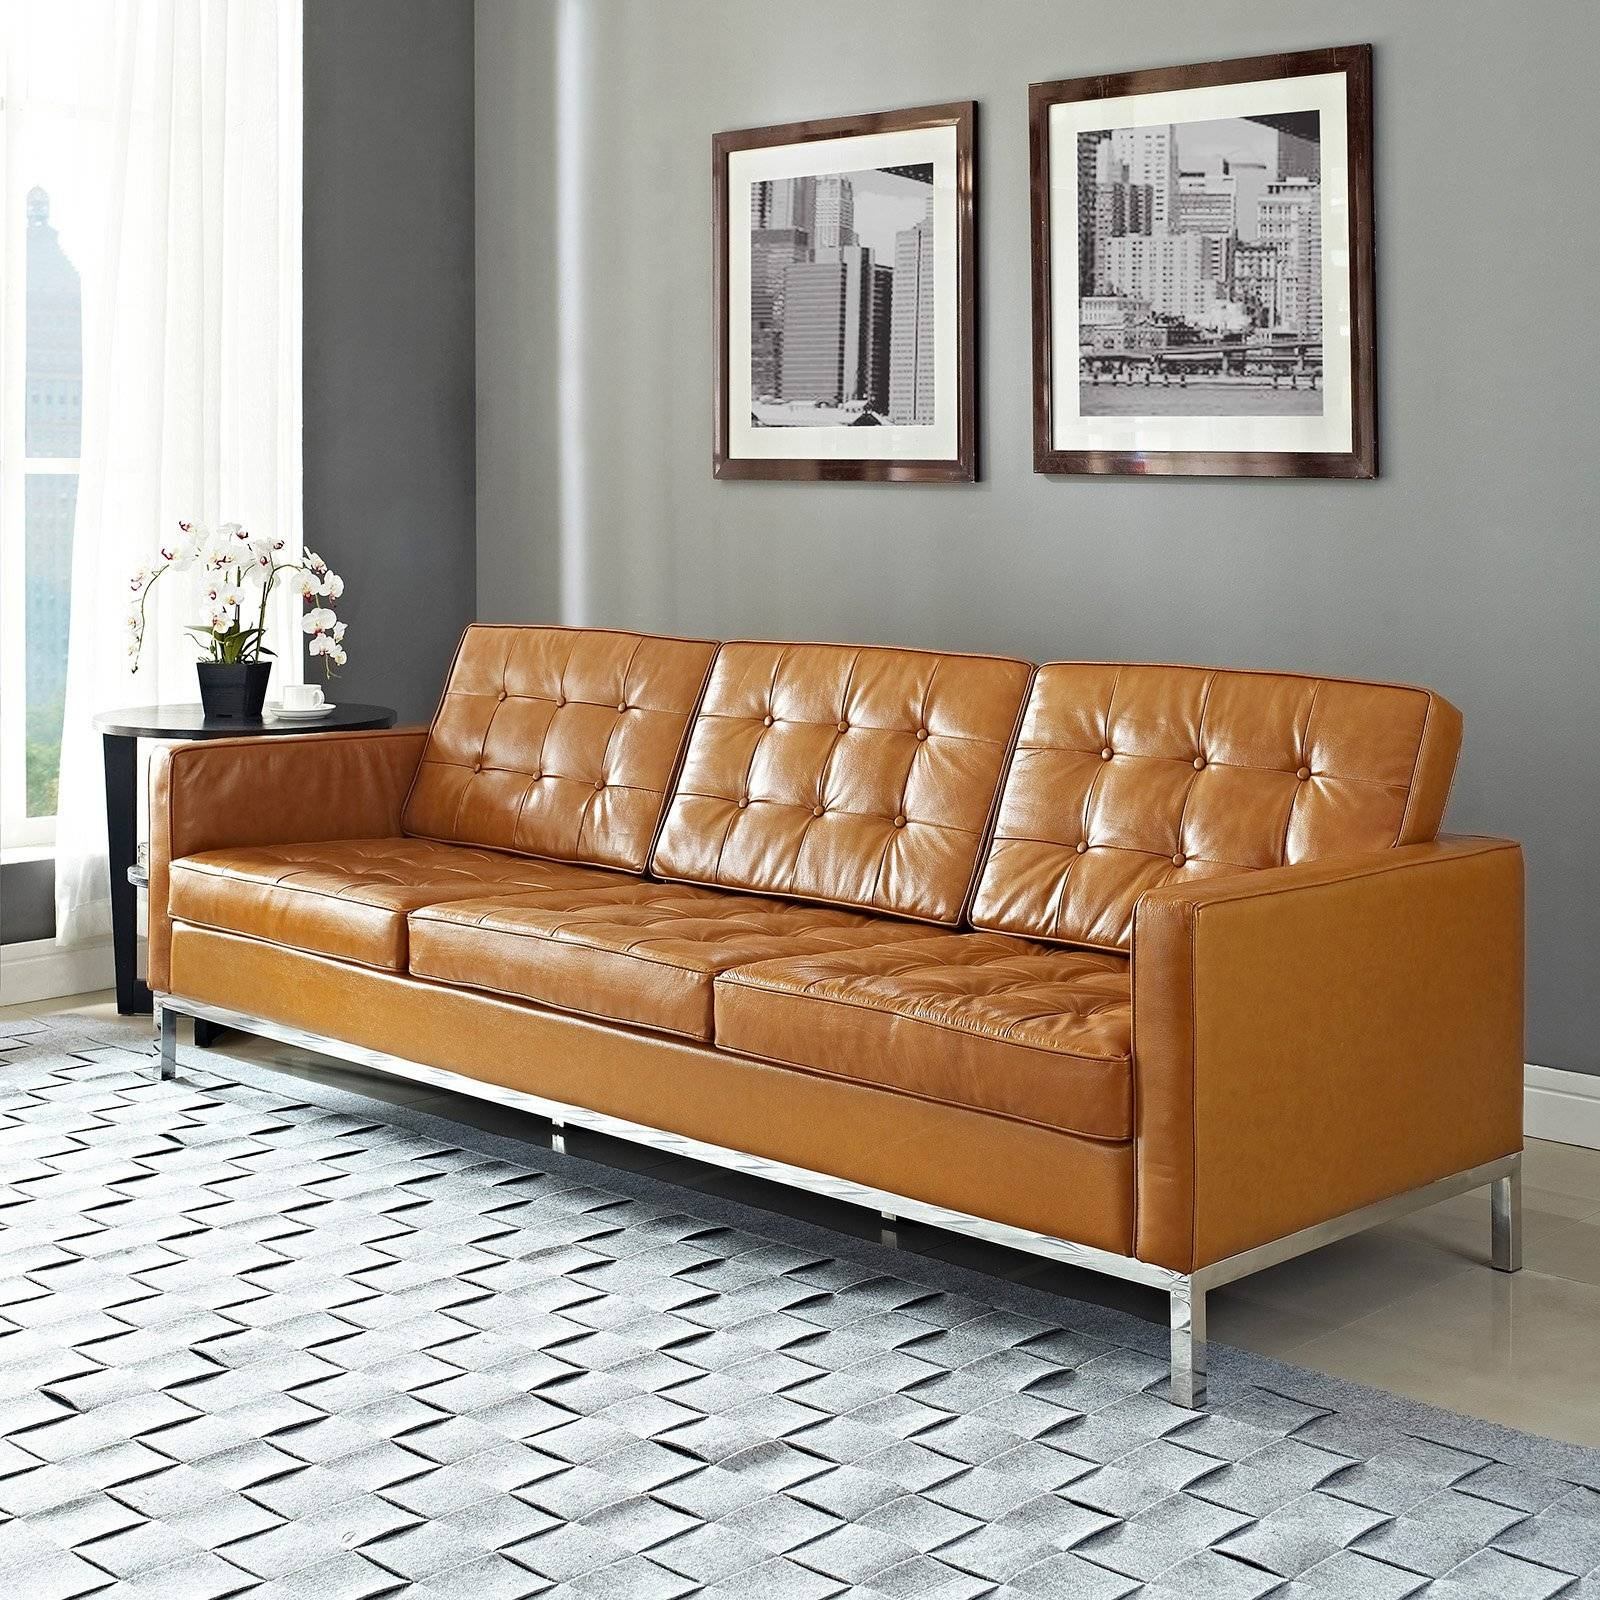 Caramel Leather Sofa Uk | Centerfieldbar in Camel Color Leather Sofas (Image 4 of 15)